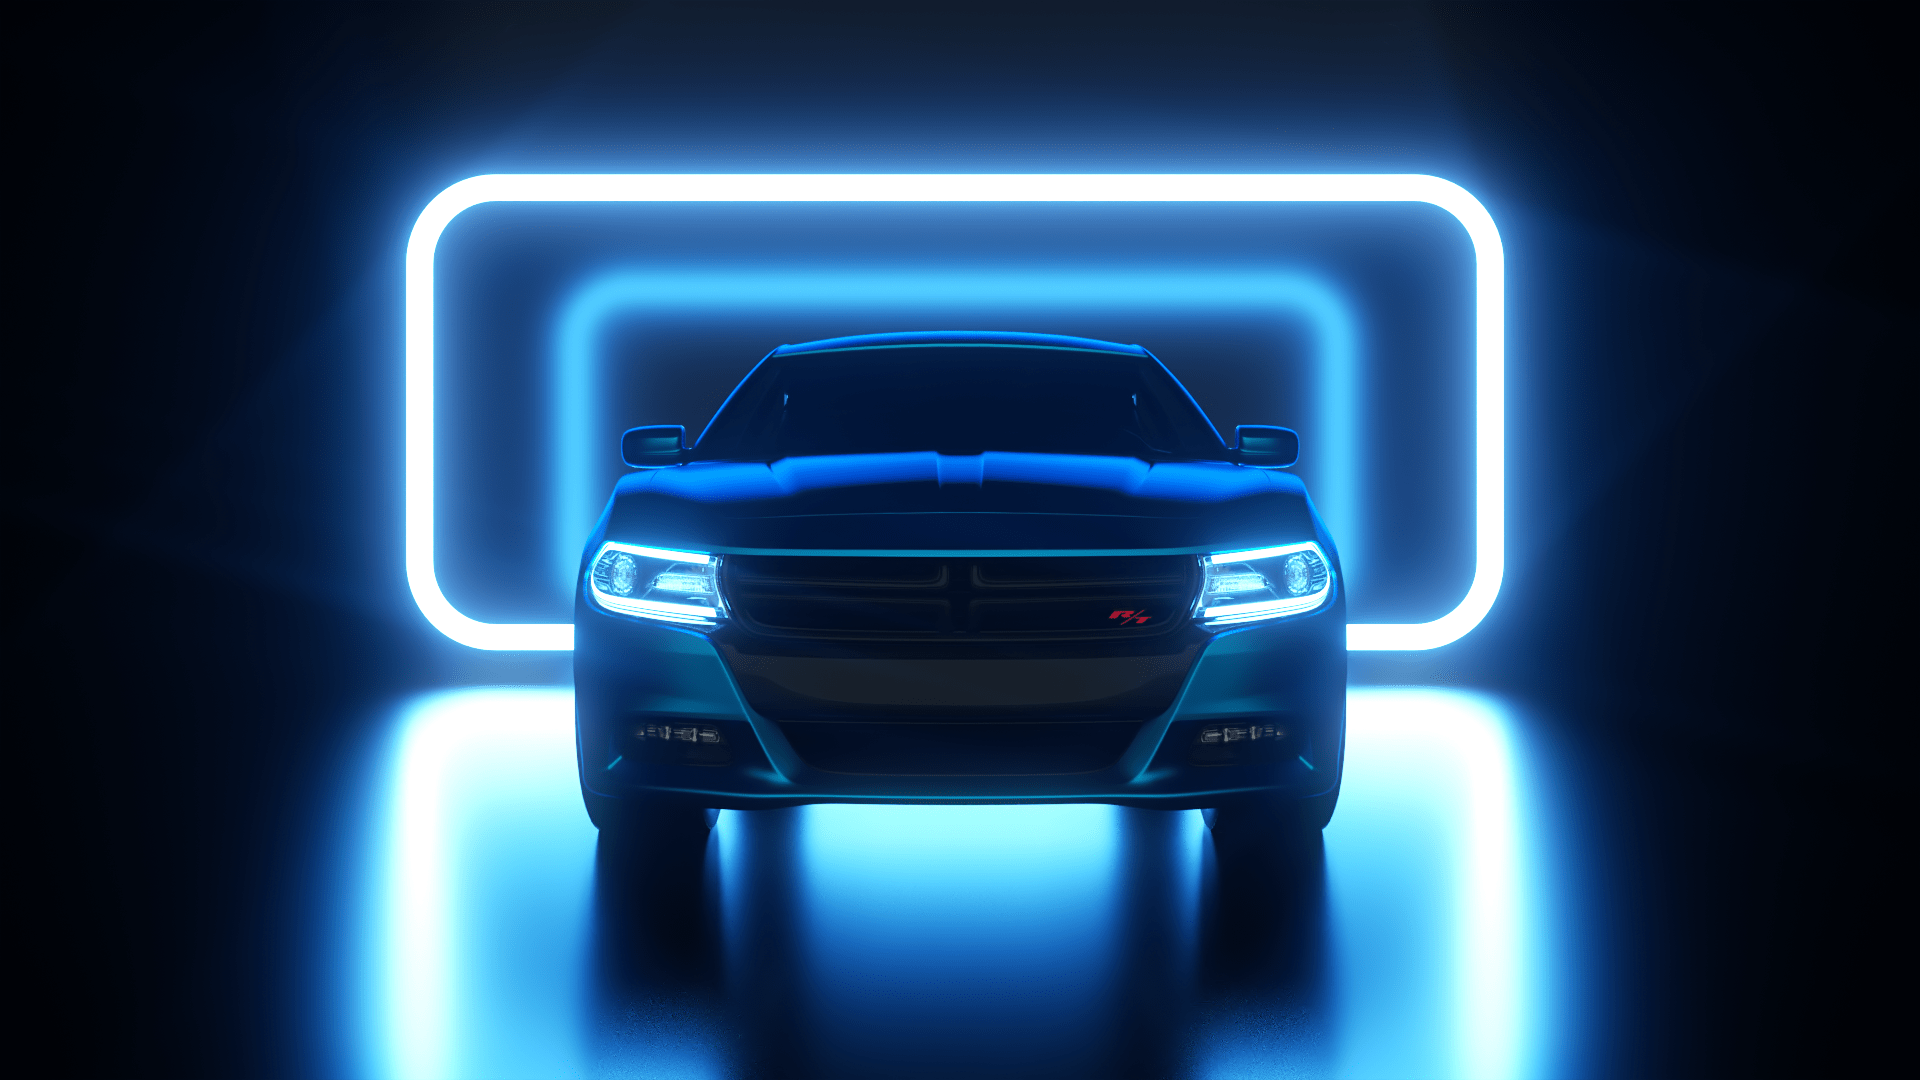 DODGE_CHARGER_OCTANE_RENDER_04